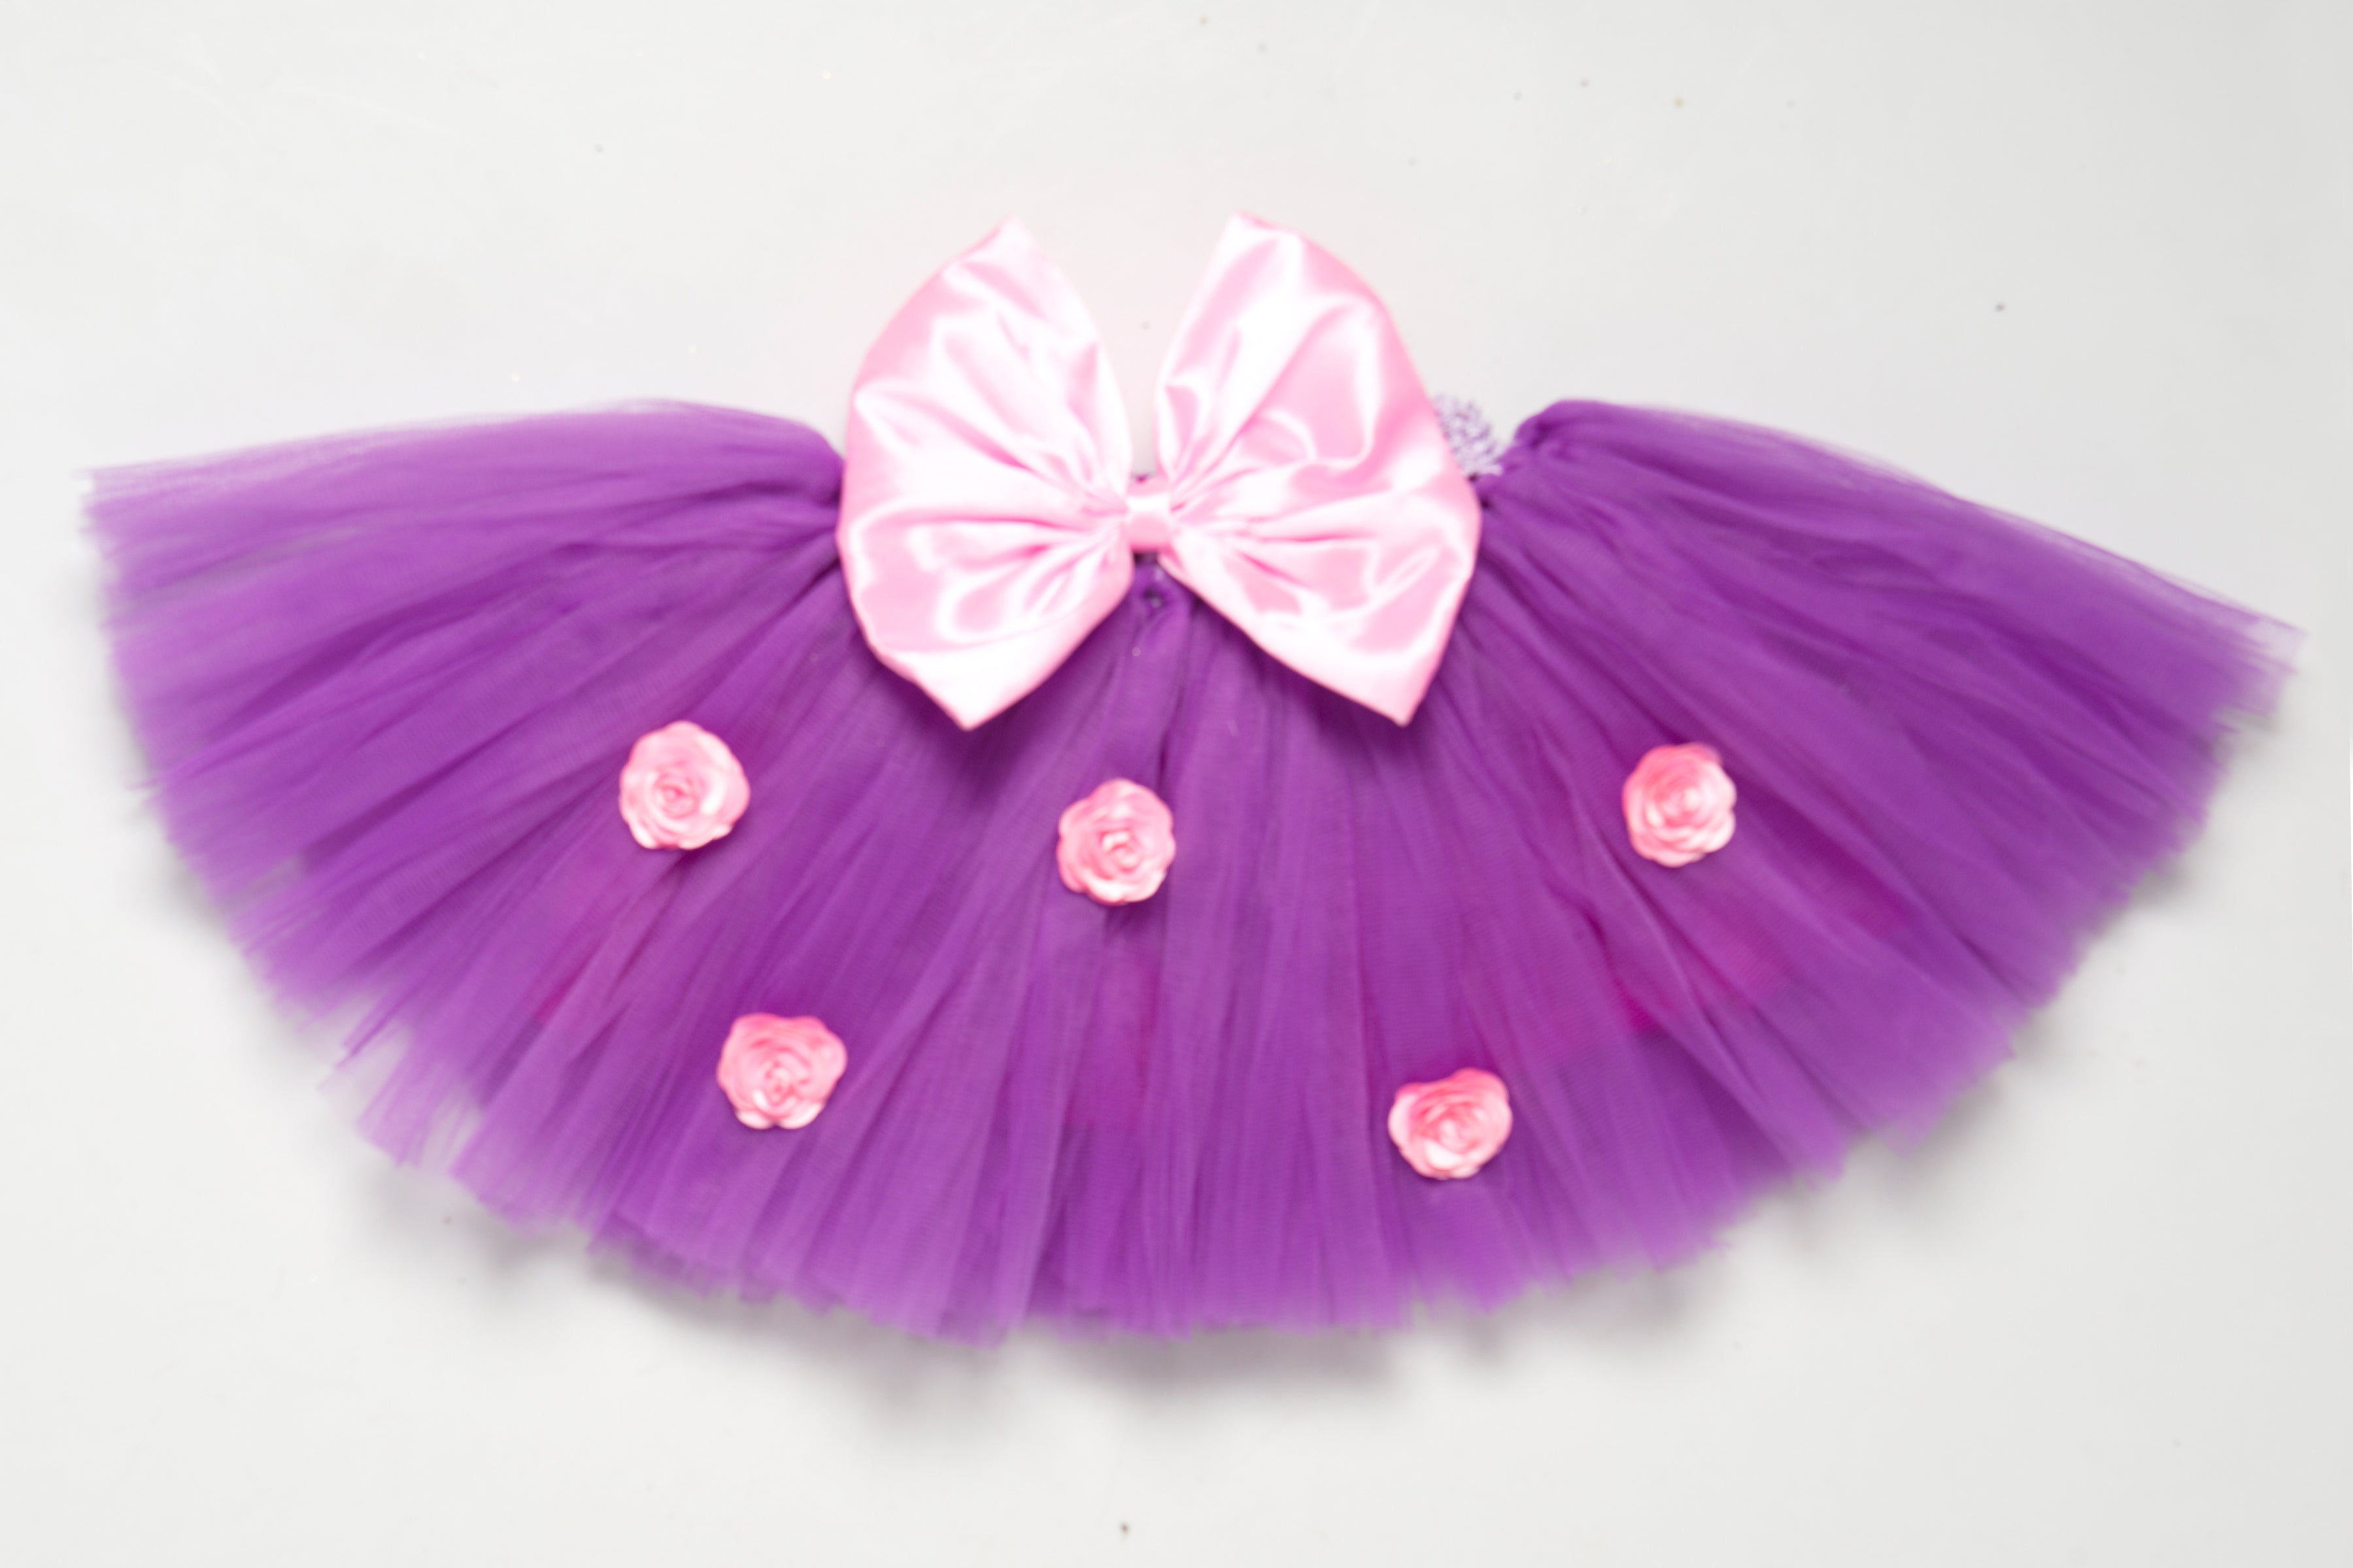 Purple & Pink Tutu Skirt with Bow